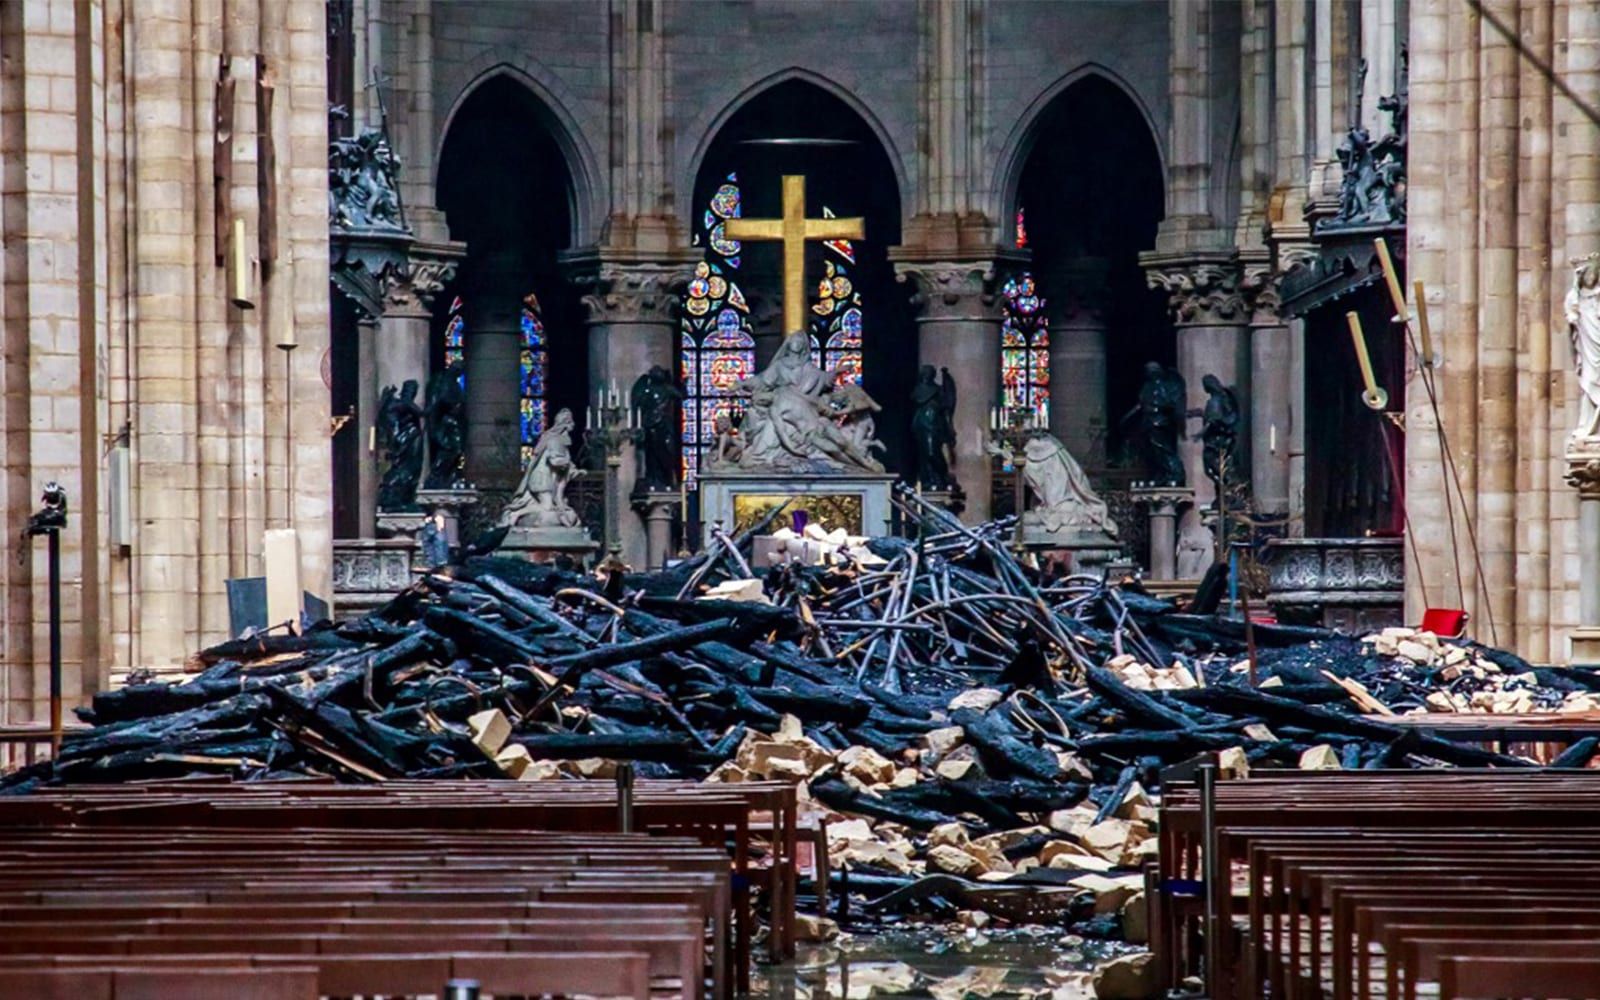 Israeli rabbi: Notre Dame fire divine retribution? Church-burning can be ok